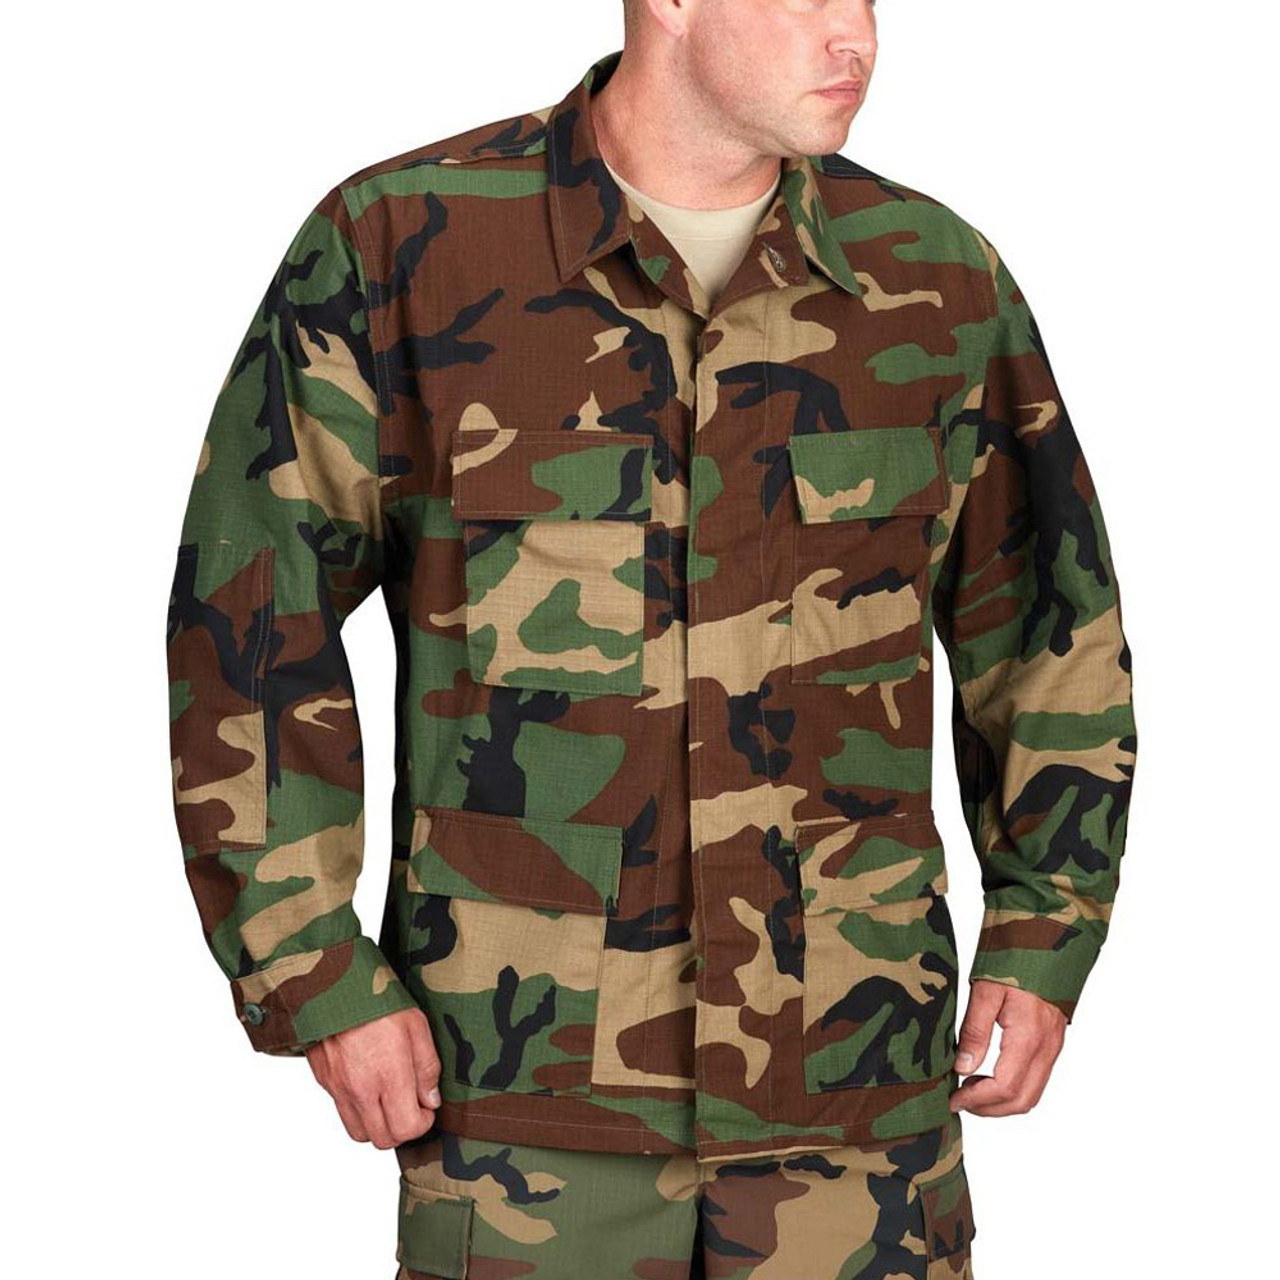 Propper® F5454-55 BDU Tactical Uniform Coat Jacket, 100% Cotton ripstop, Four front cargo pockets, available in black, khaki, 3 color desert, woodland, olive and dark navy